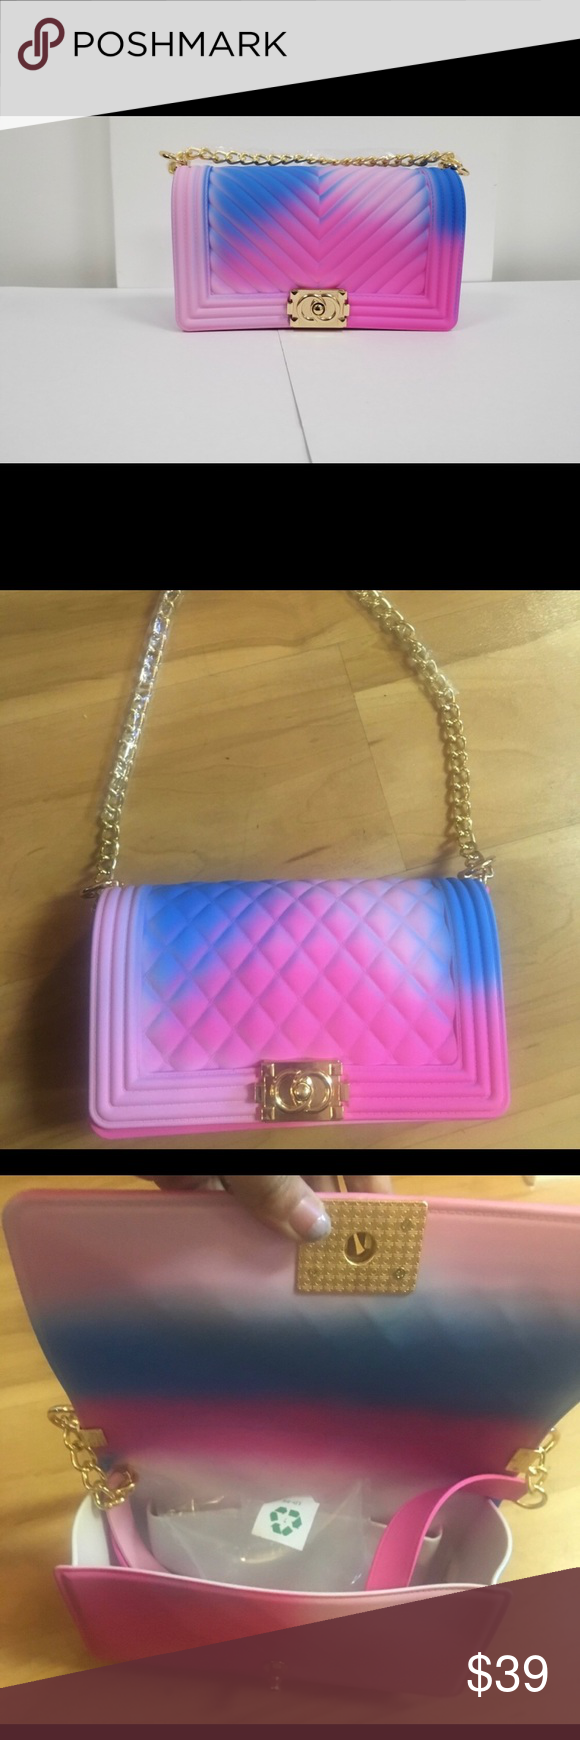 candy colored matte crossbody jelly handbag jelly purse purses and handbags candy colors pinterest